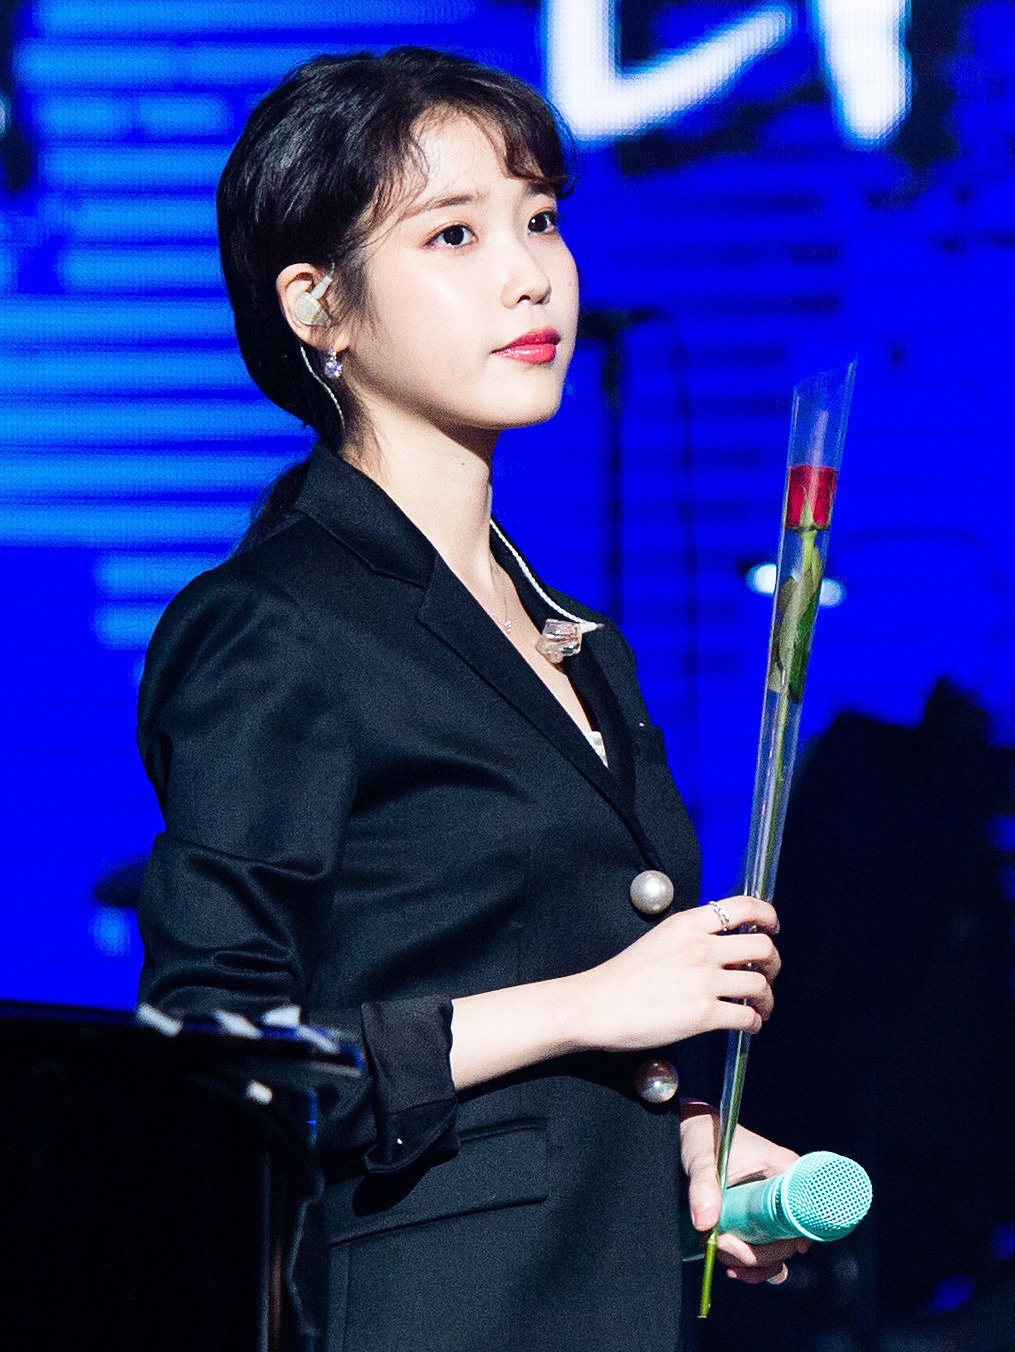 The 25-year old daughter of father (?) and mother(?) Lee Ji-Eun in 2018 photo. Lee Ji-Eun earned a  million dollar salary - leaving the net worth at 15 million in 2018